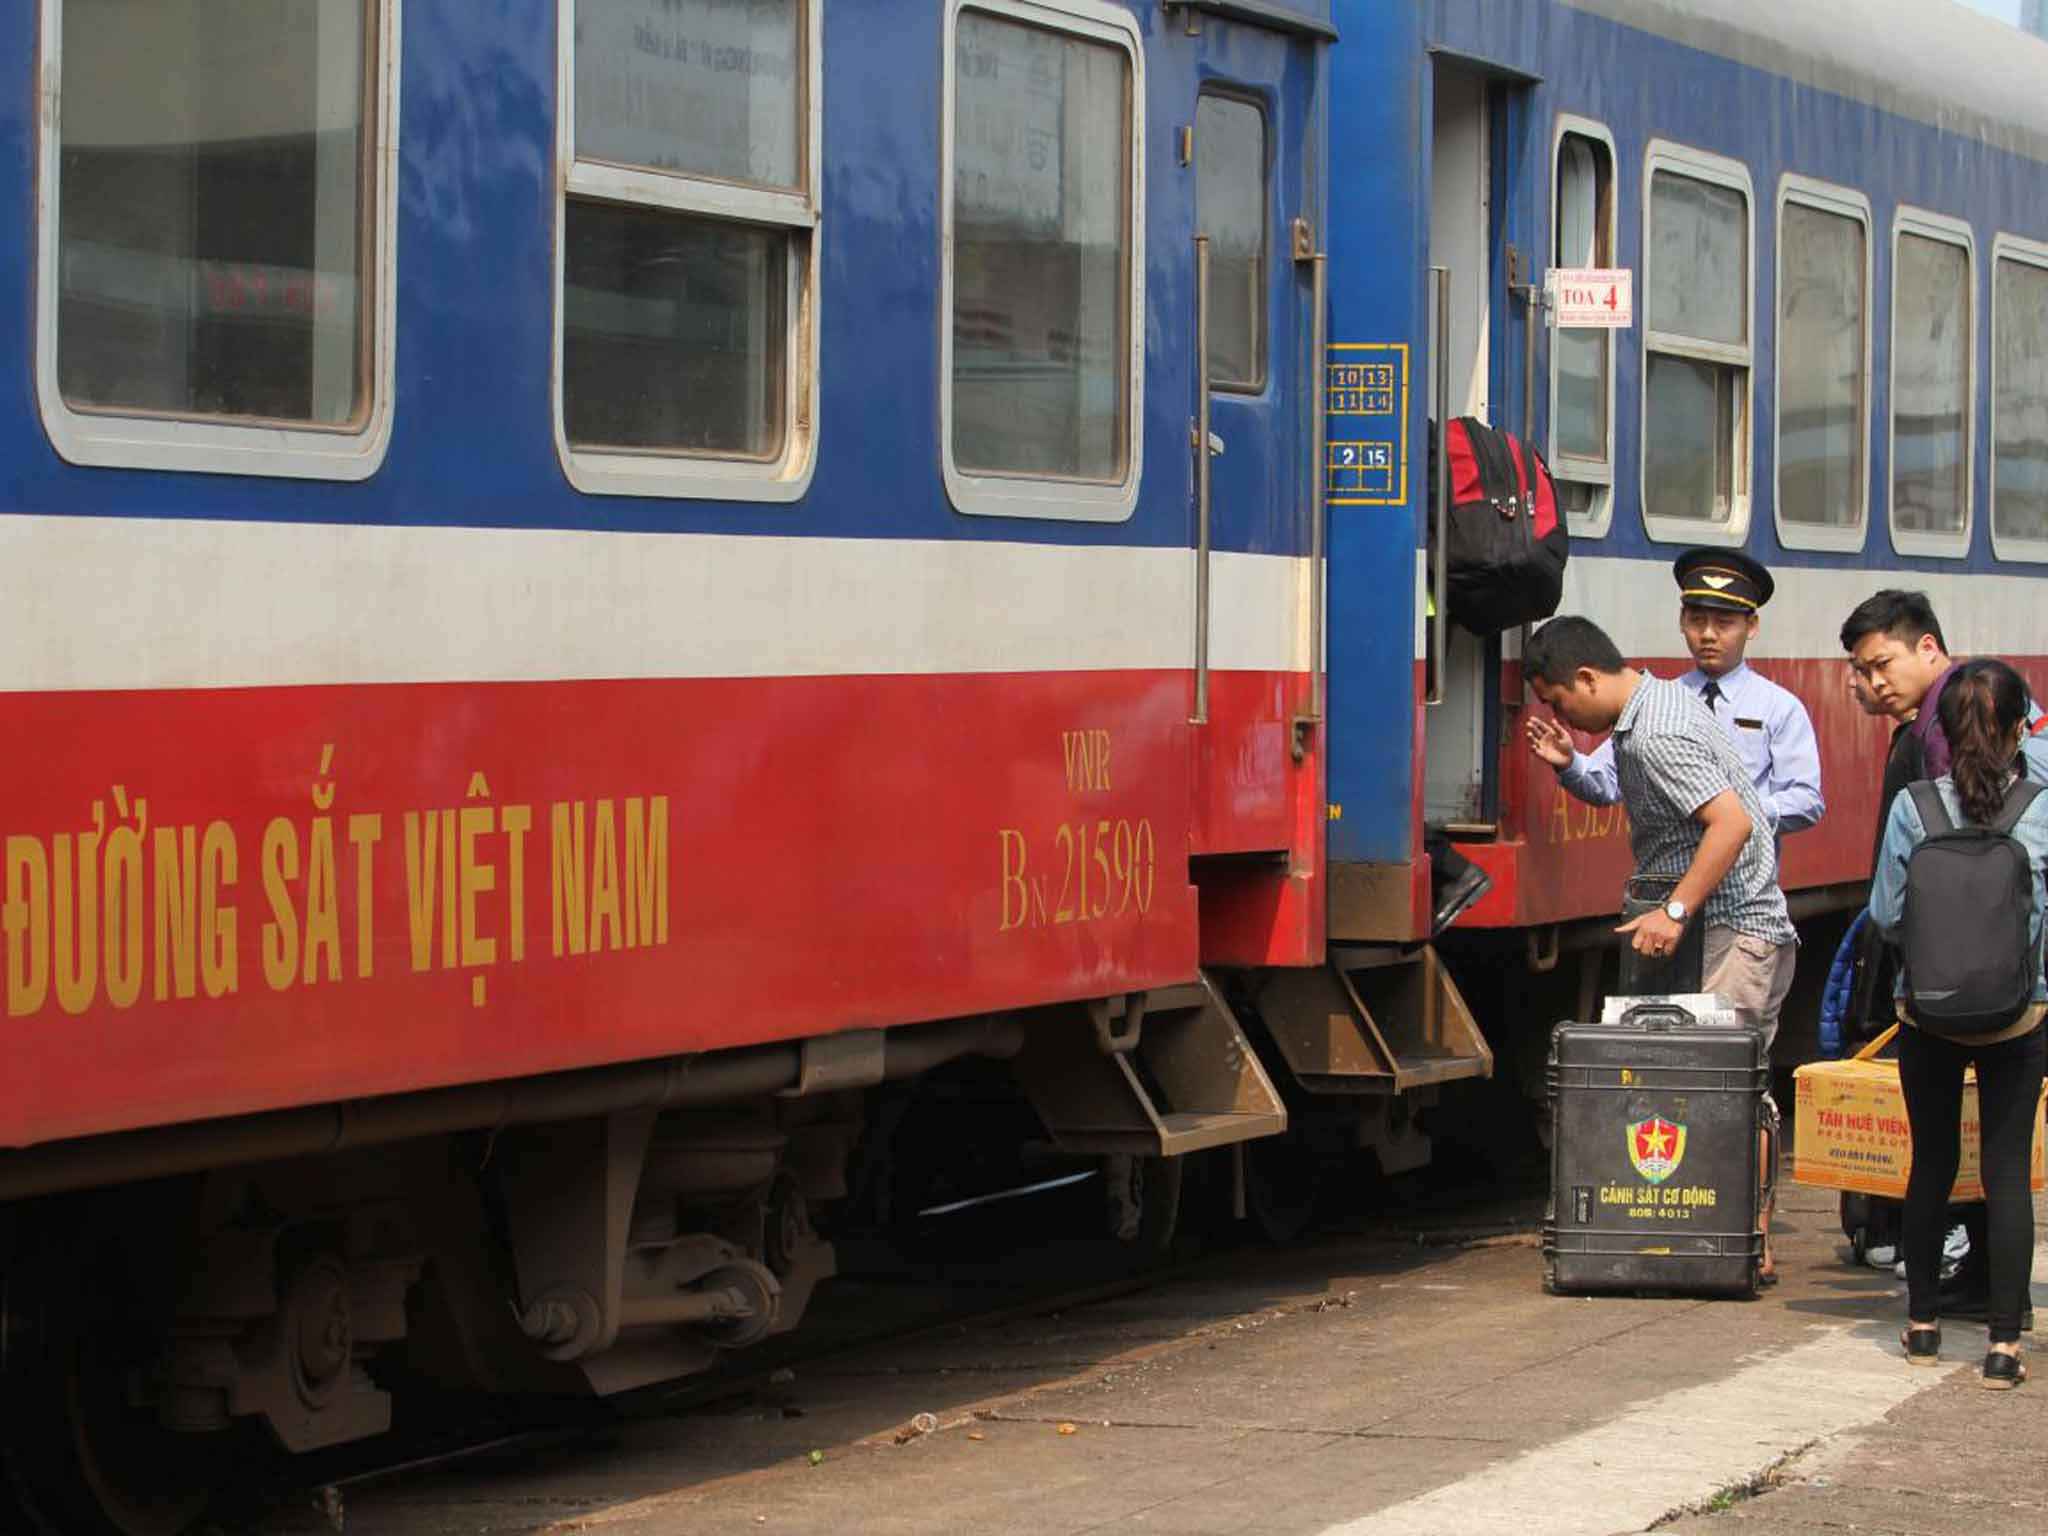 Riding the Reunification Express in Vietnam